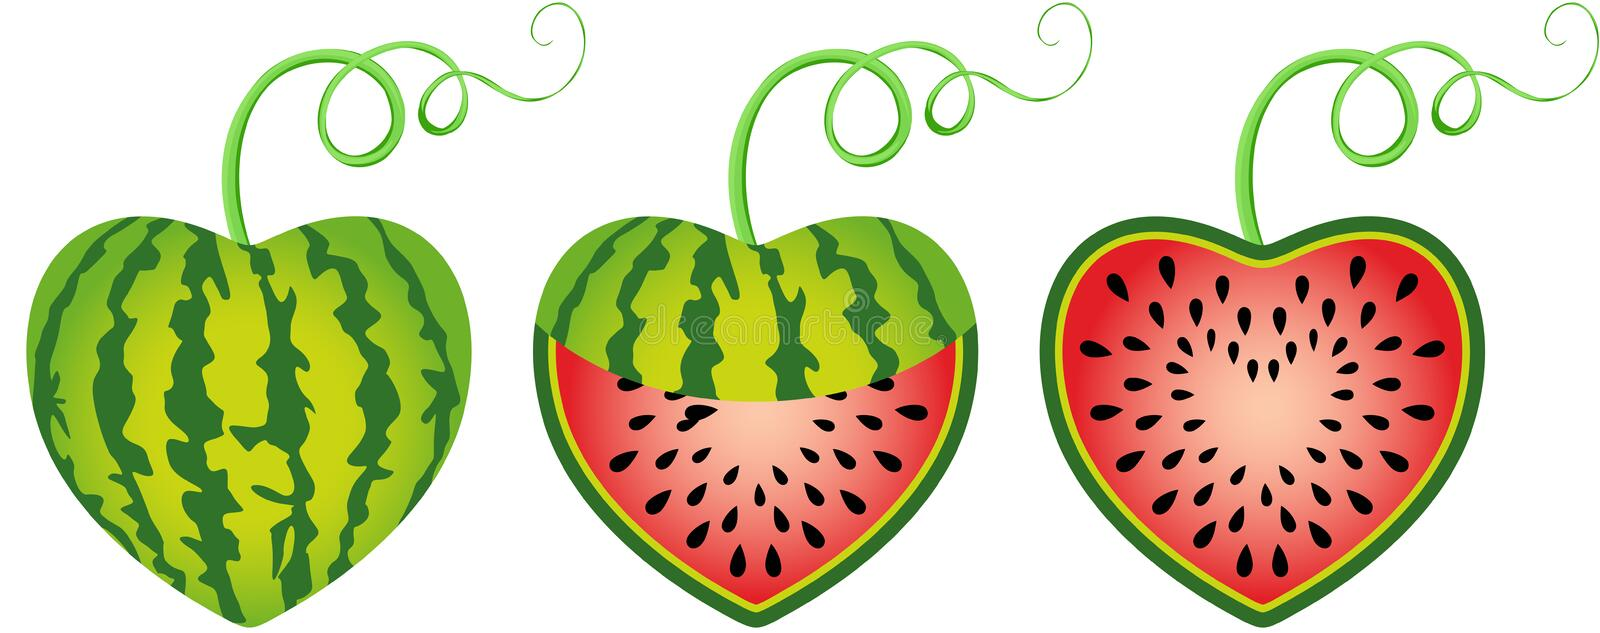 Watermelon heart shaped royalty free illustration